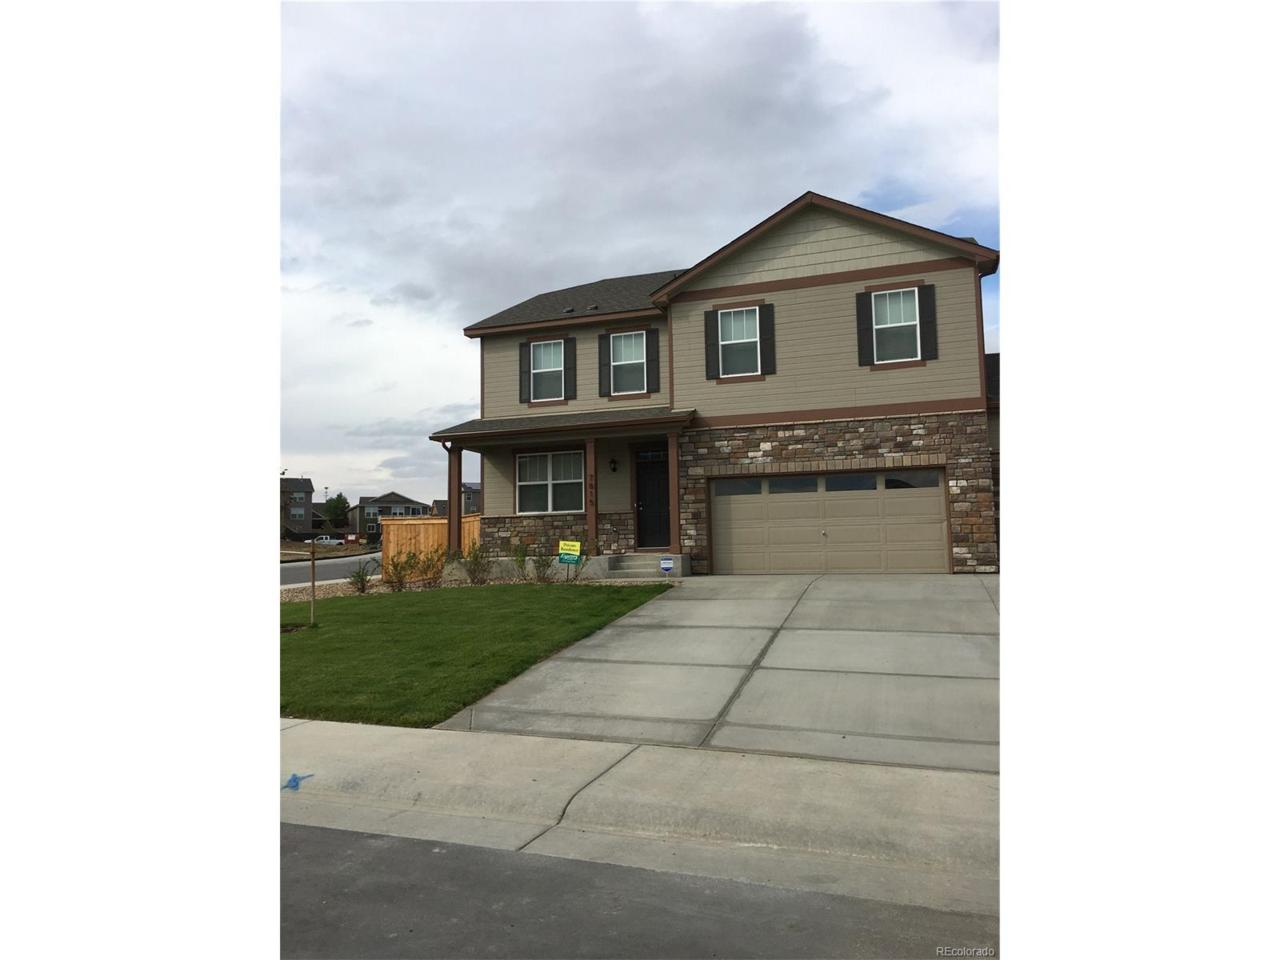 13673 Valentia Street, Thornton, CO 80602 (MLS #8240728) :: 8z Real Estate